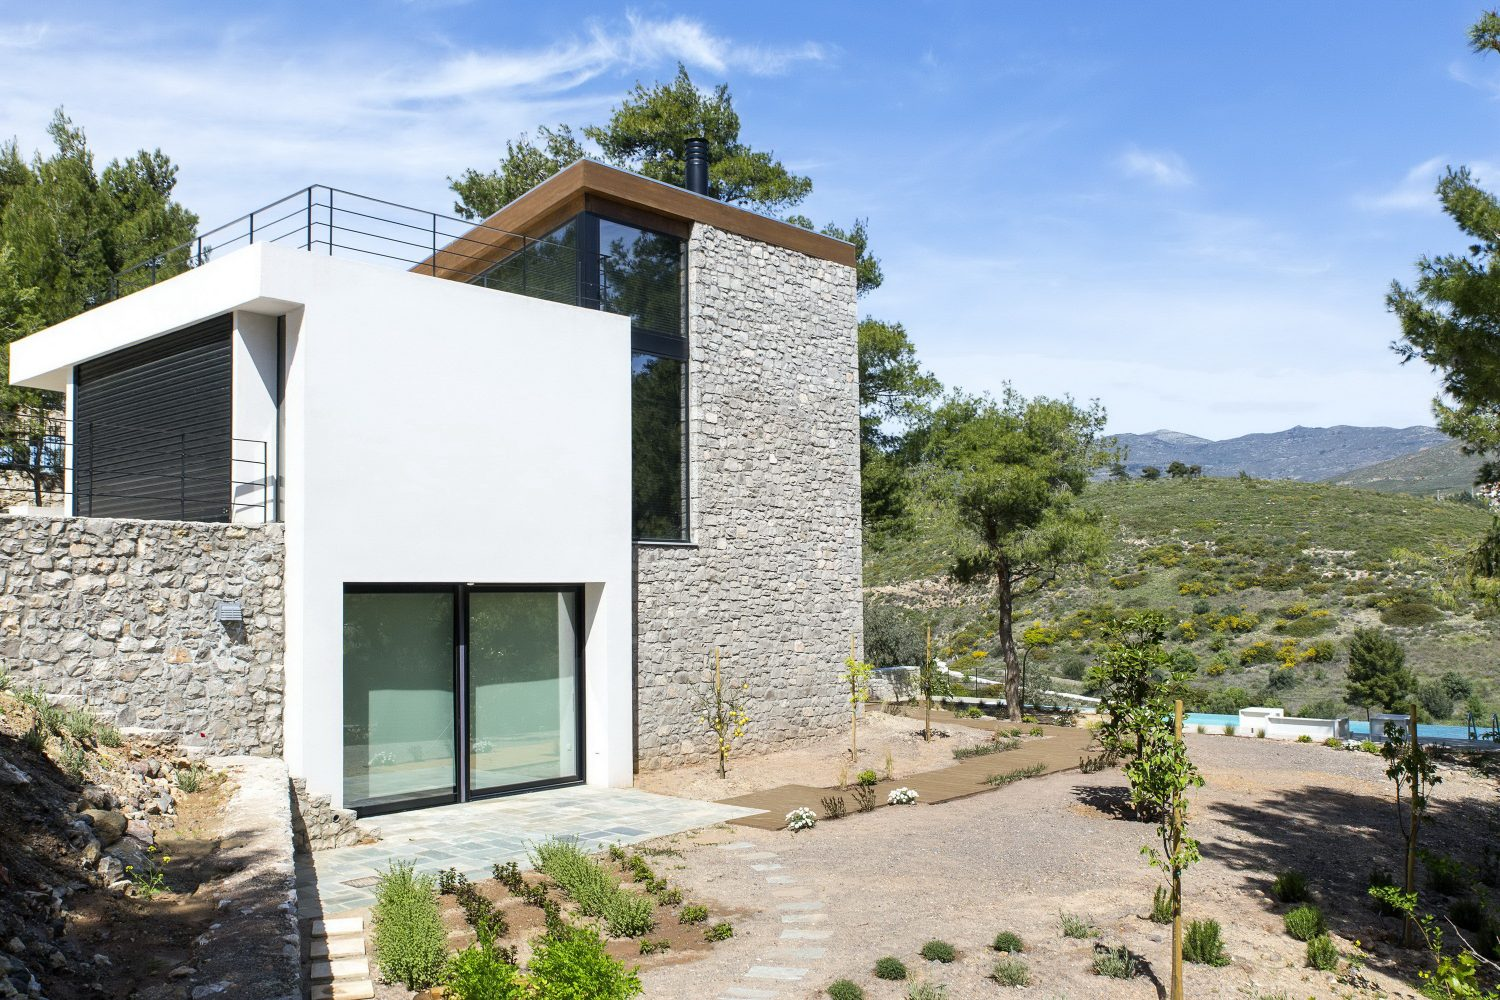 The Wedge House by Schema Architecture & Engineering